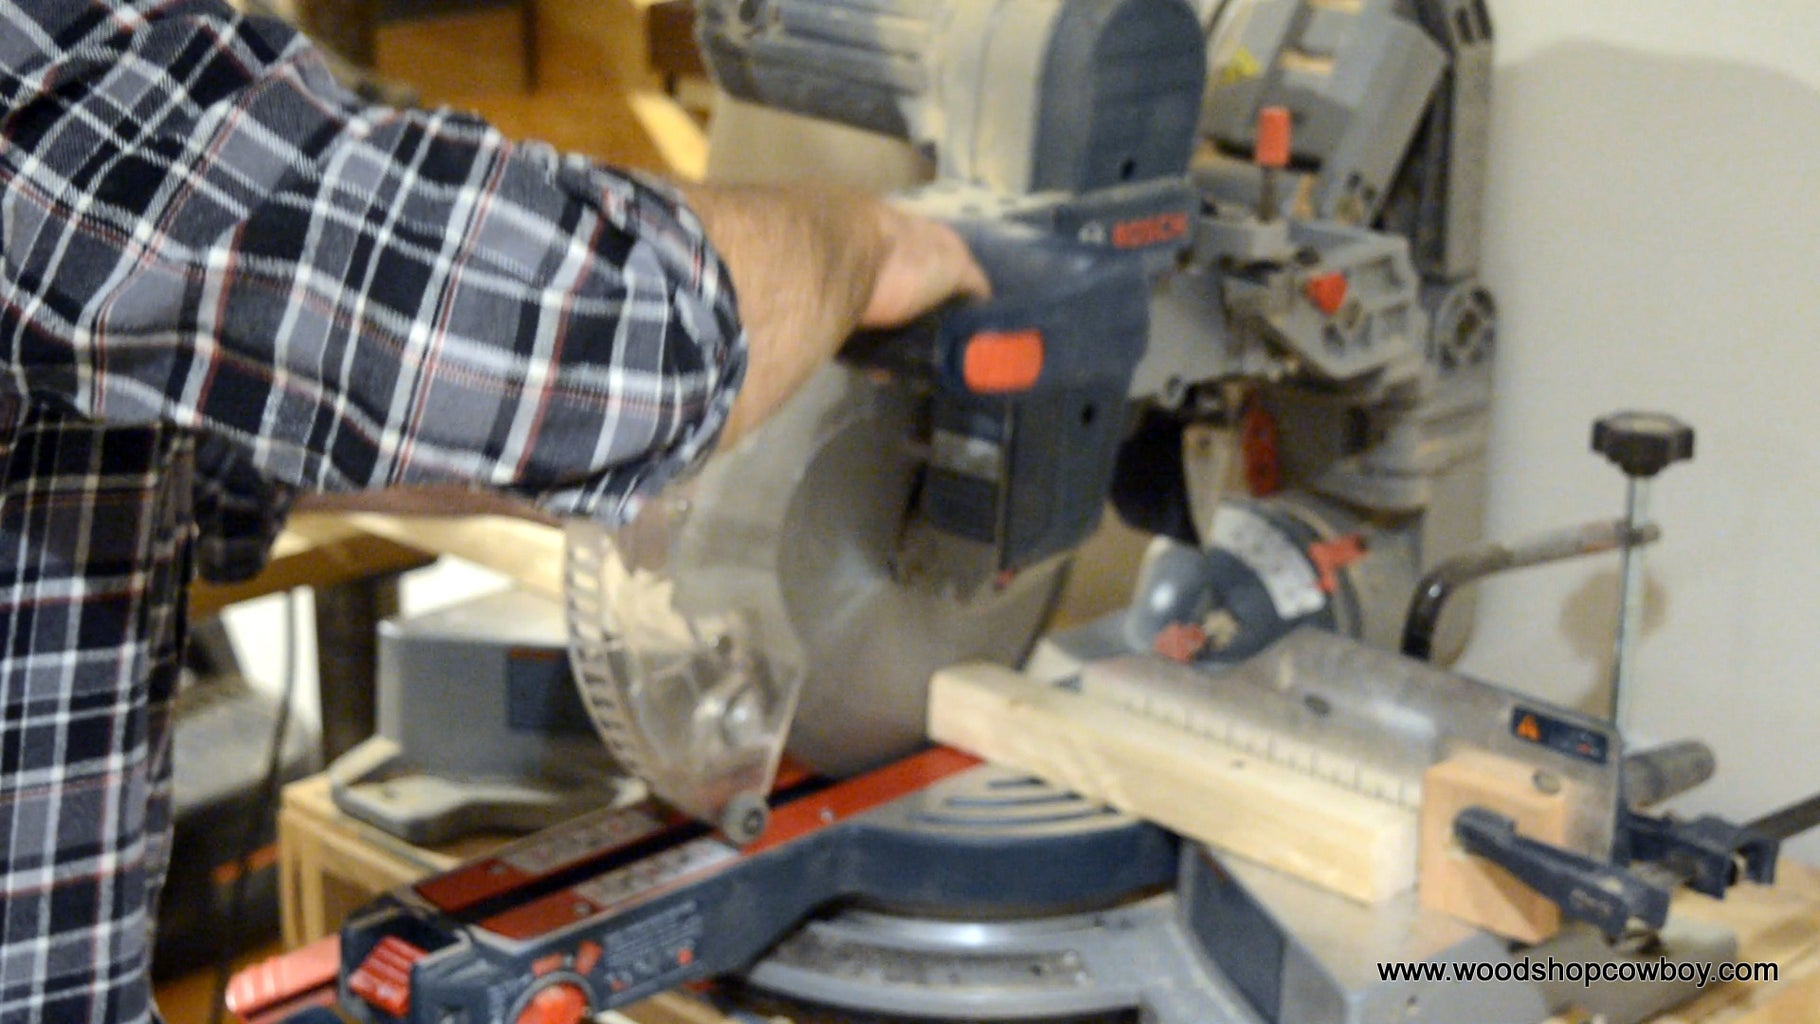 Milling and Dimensioning